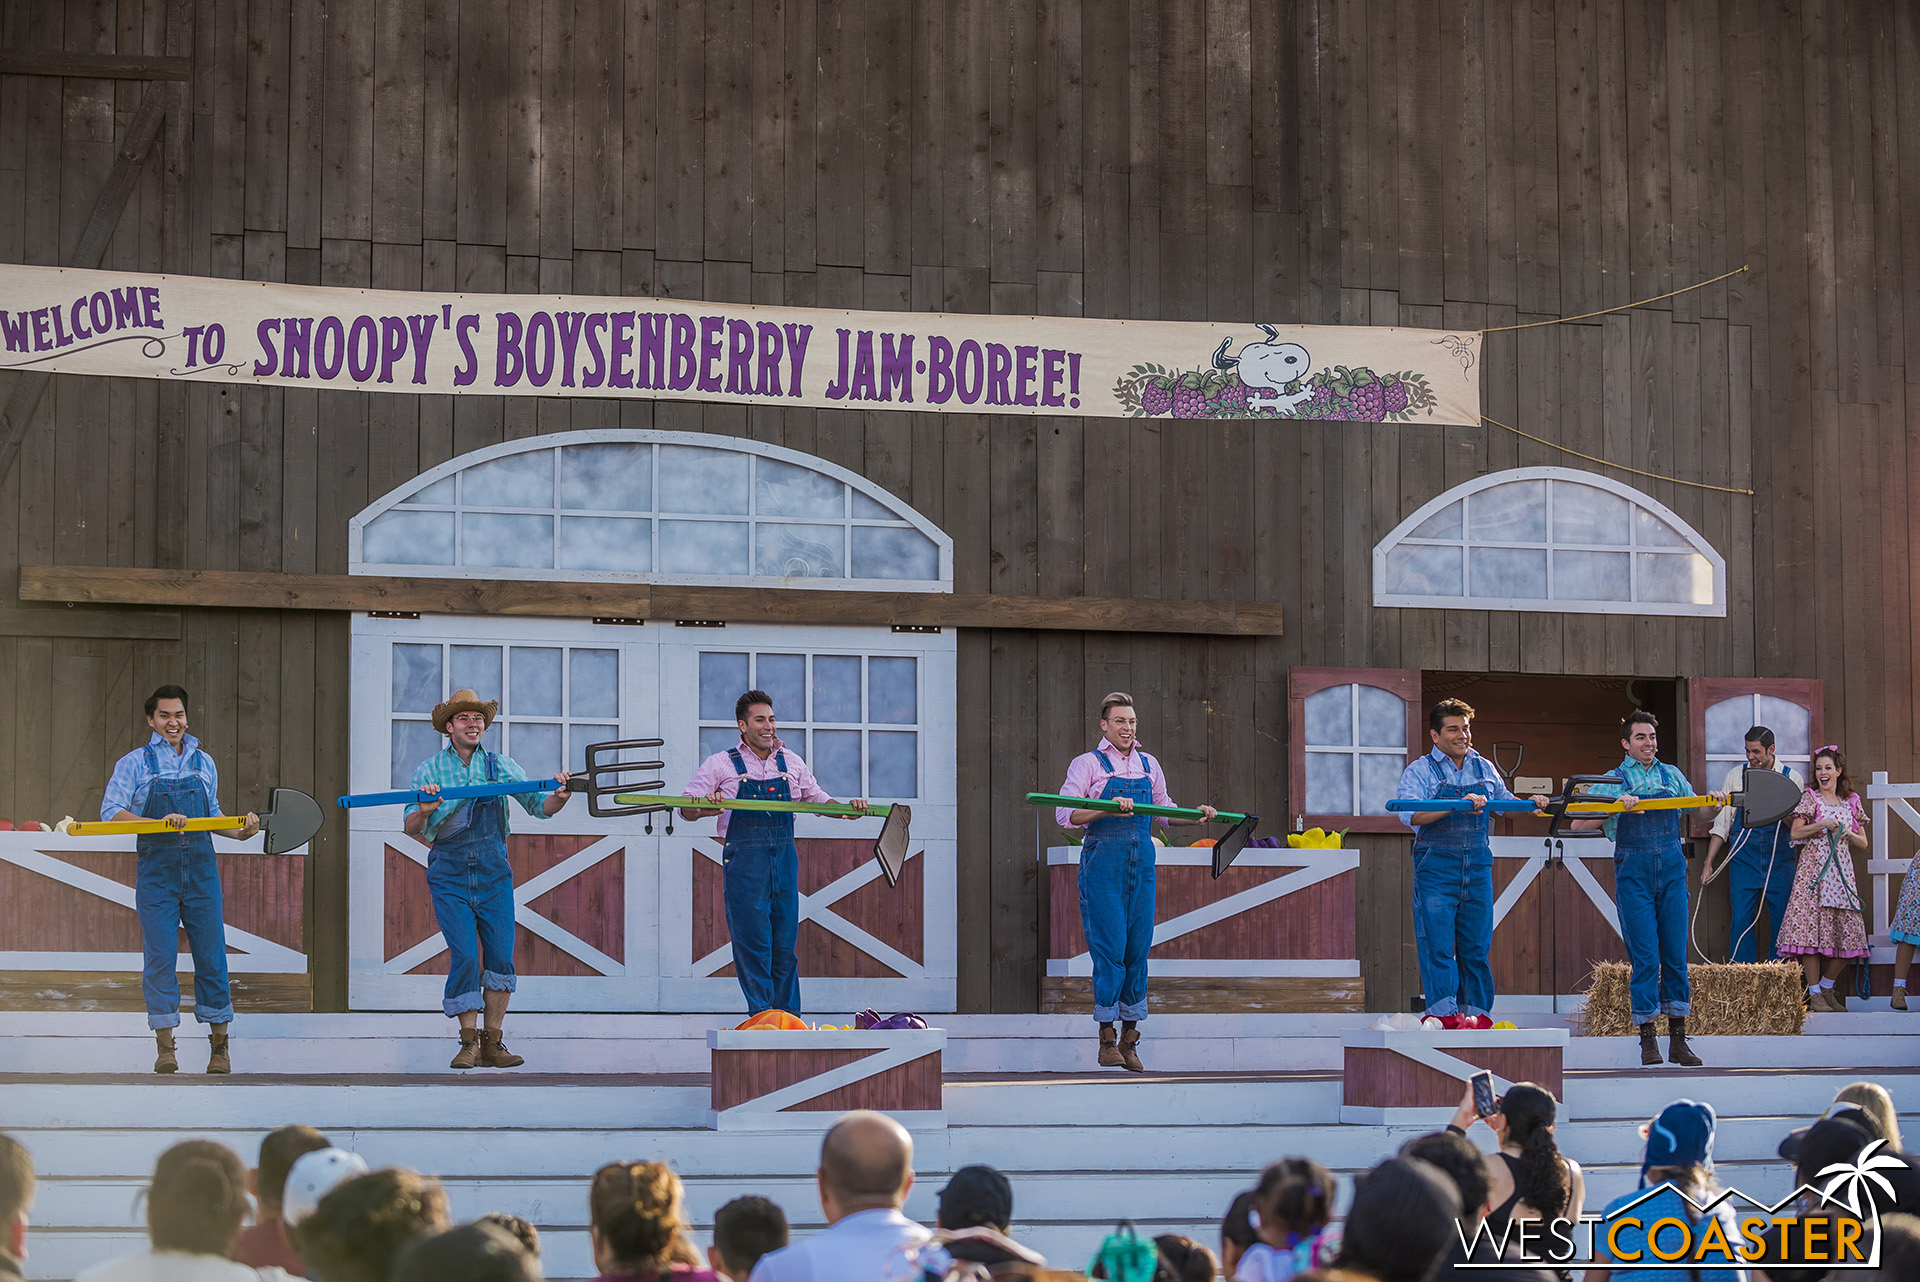 KBF-19_0404-F-Entertainment-SnoopyJamboree-0004.jpg